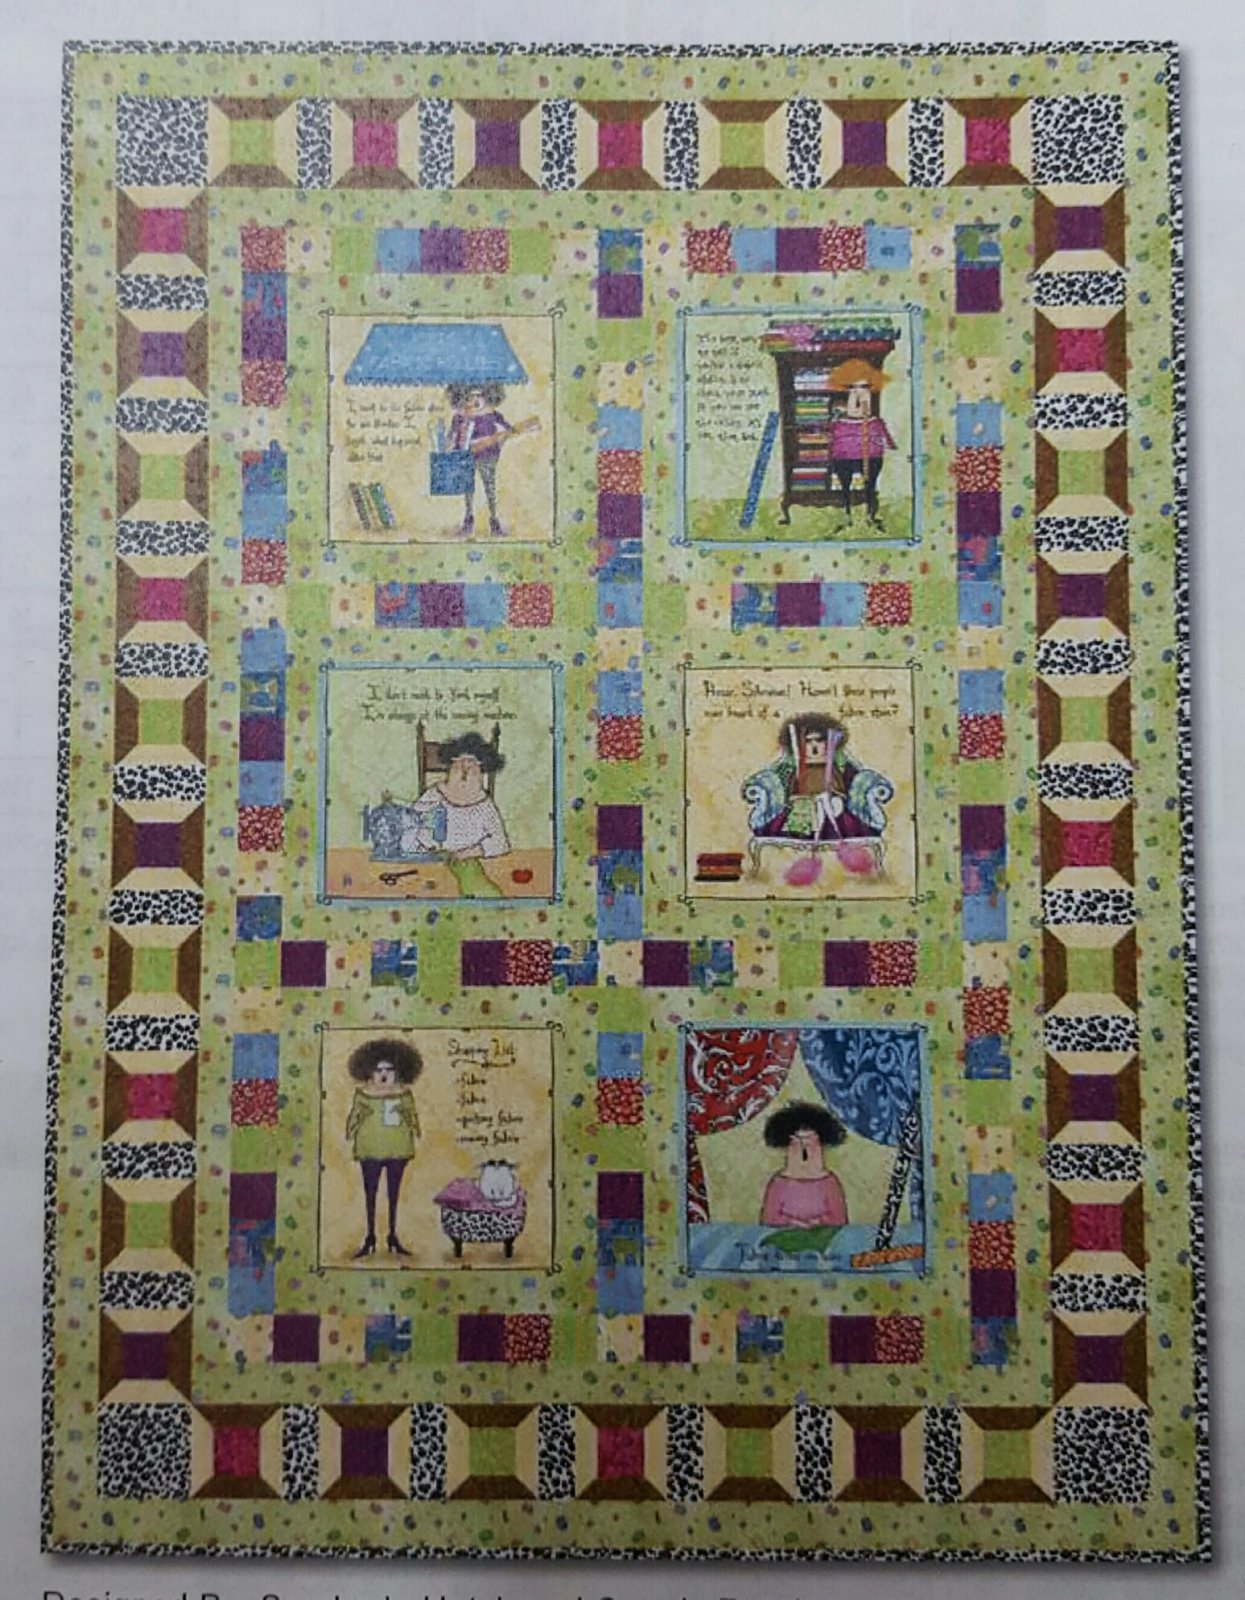 Fabric Follies Quilt Kit